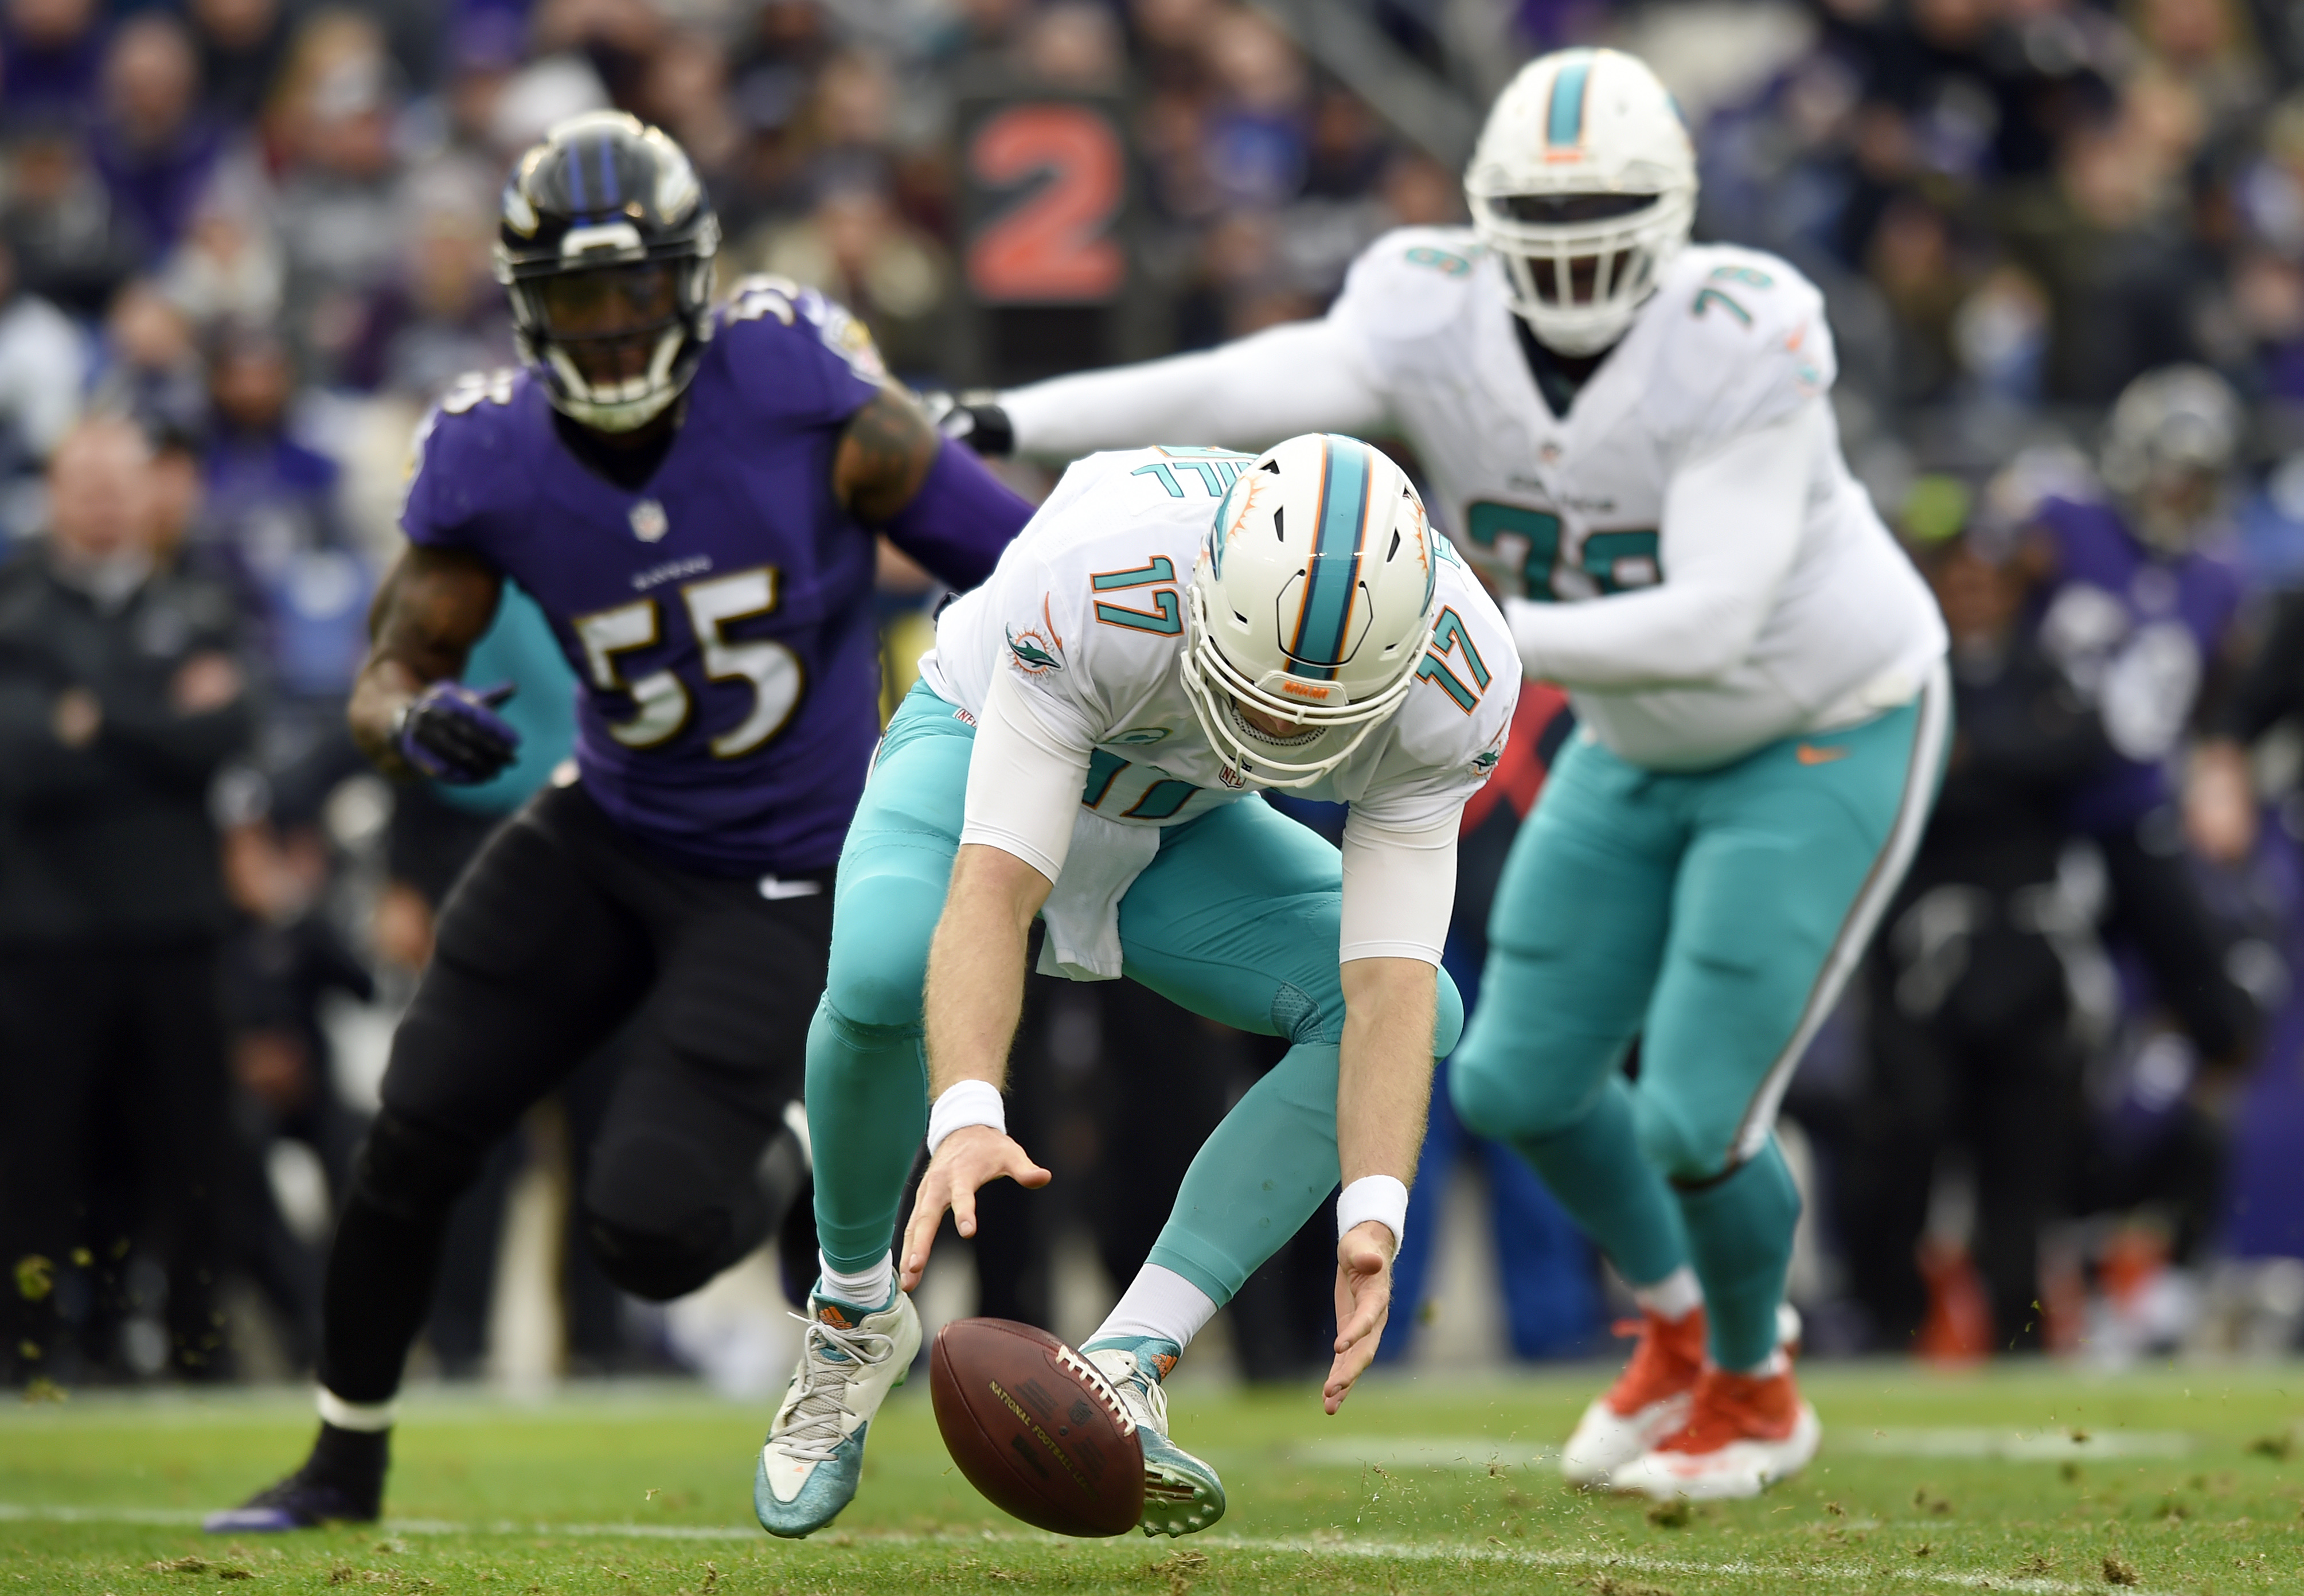 Miami Dolphins quarterback Ryan Tannehill (17) recovers a snapped ball that he fumbled in the first half of an NFL football game against the Baltimore Ravens, Sunday, Dec. 4, 2016, in Baltimore. (AP Photo/Gail Burton)